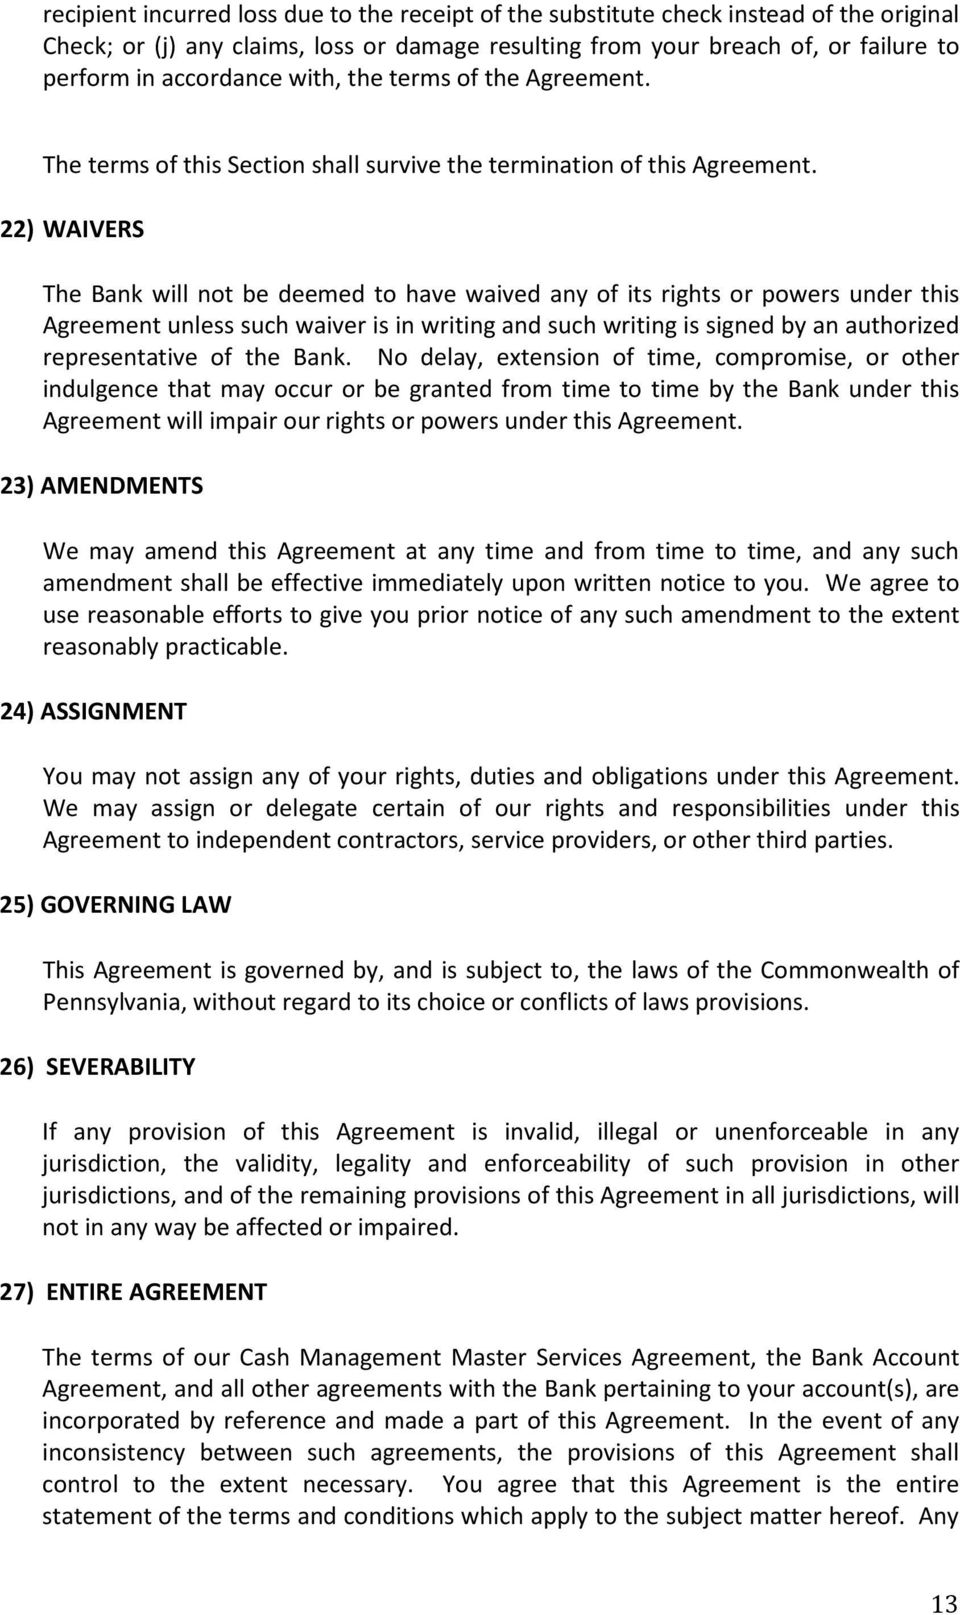 22) WAIVERS The Bank will not be deemed to have waived any of its rights or powers under this Agreement unless such waiver is in writing and such writing is signed by an authorized representative of